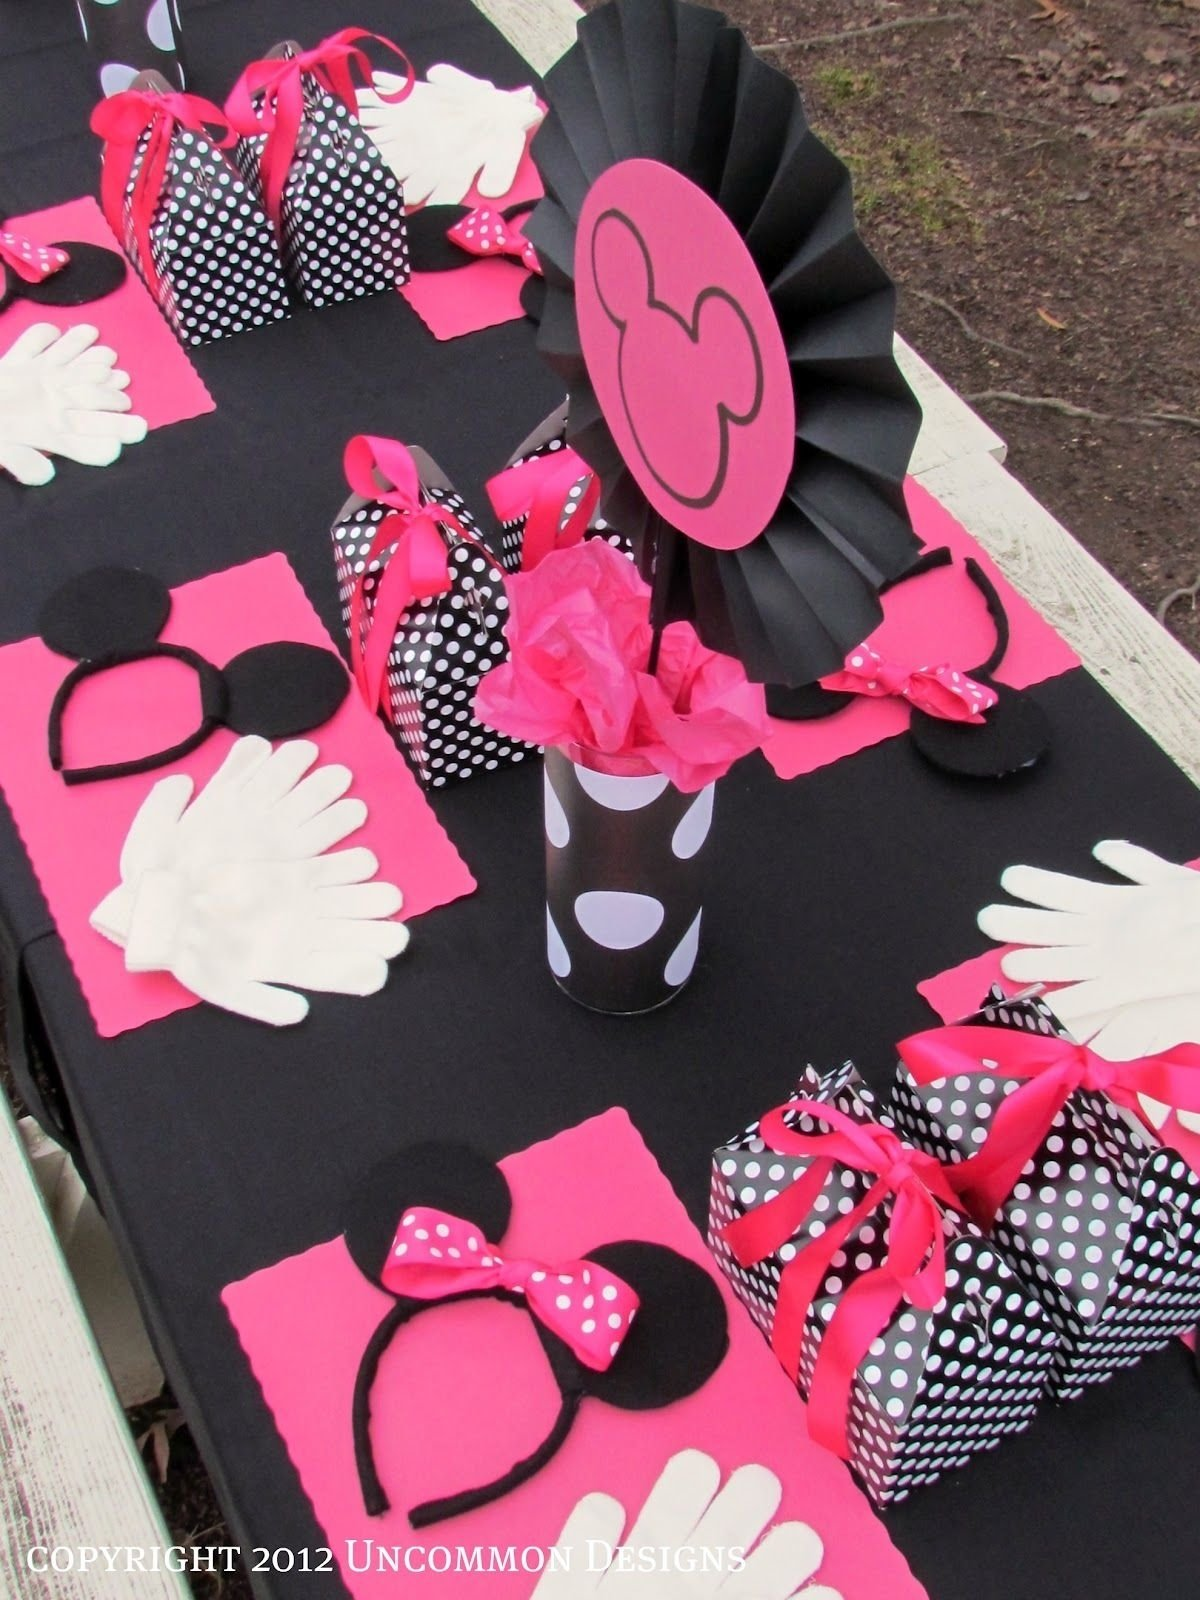 10 Perfect Baby Minnie Mouse Birthday Party Ideas a minnie mouse birthday party minnie mouse mice and gloves